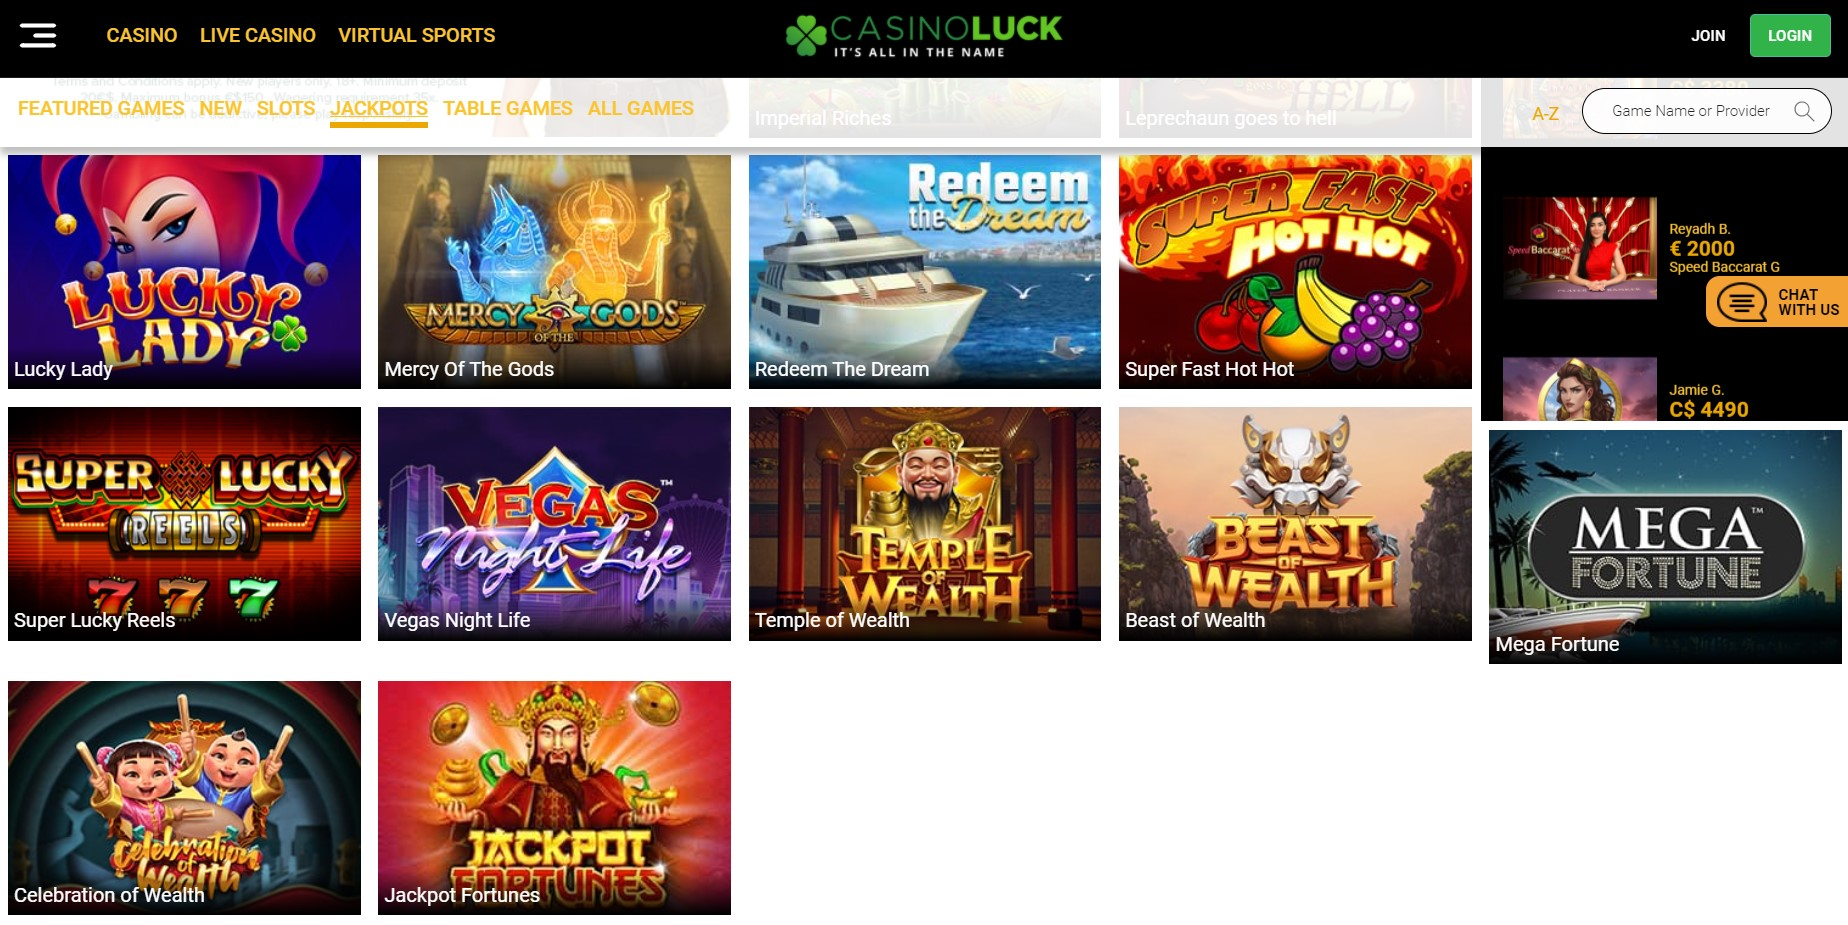 CasinoLuck jackpot games